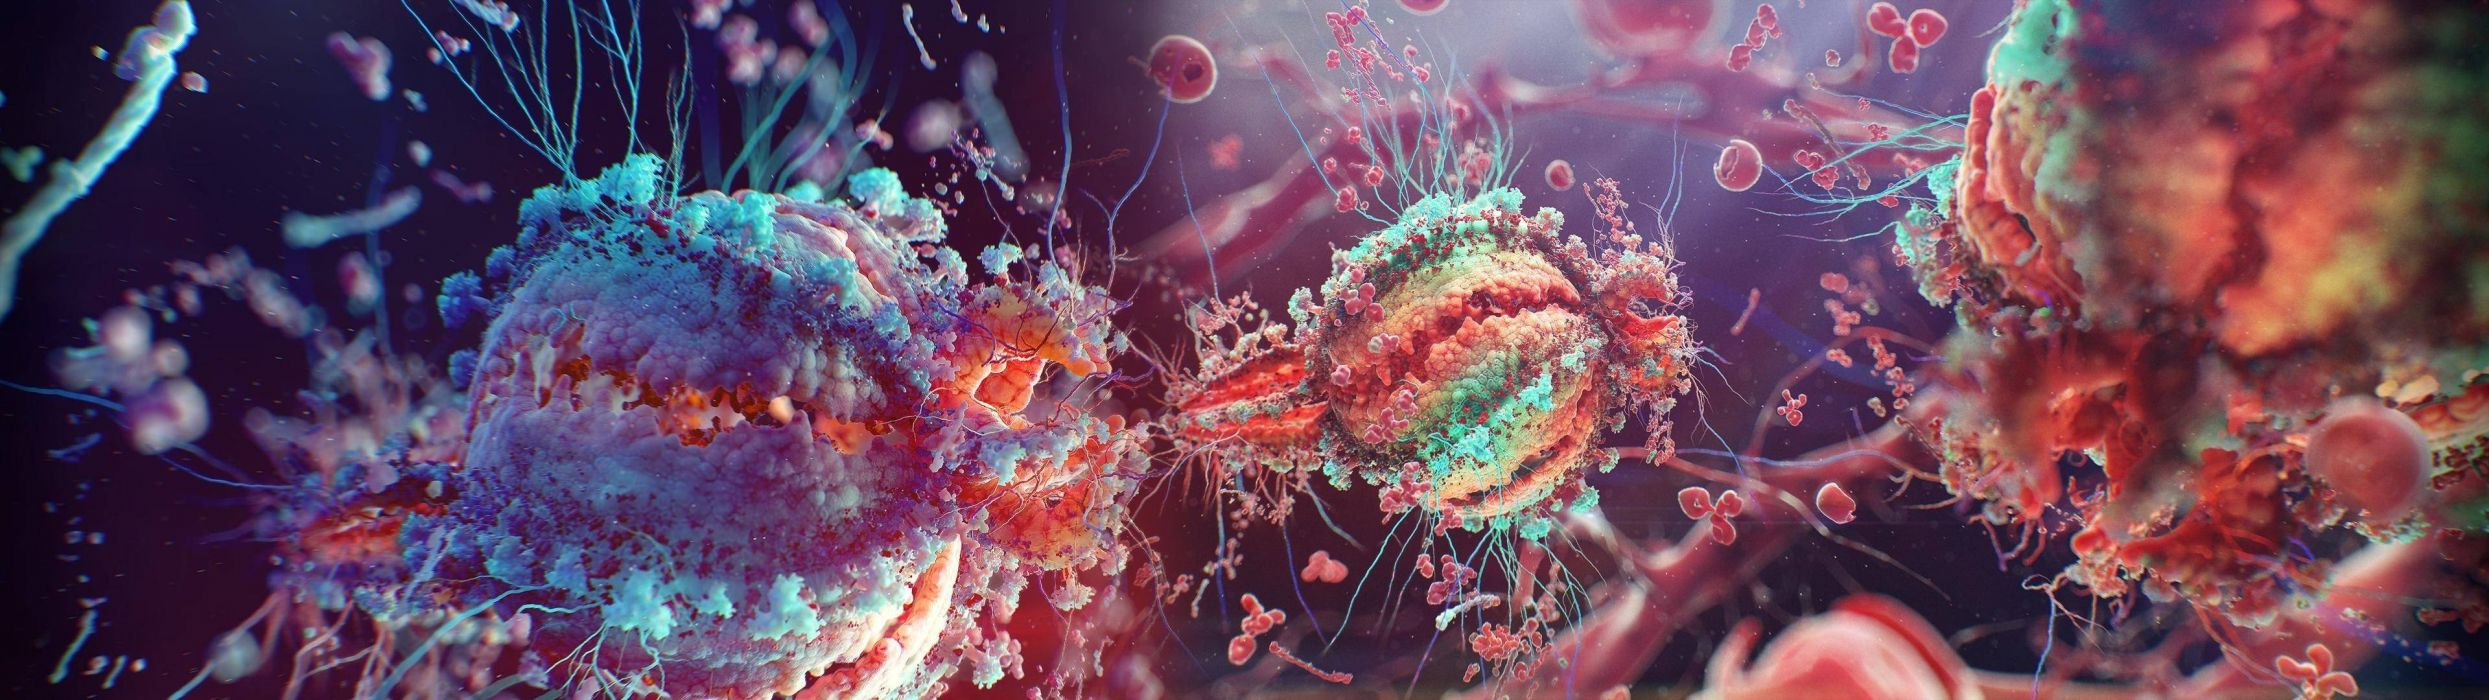 virus medical biology detail medicine psychedelic science abstract abstraction chemistry Genetics wallpaper